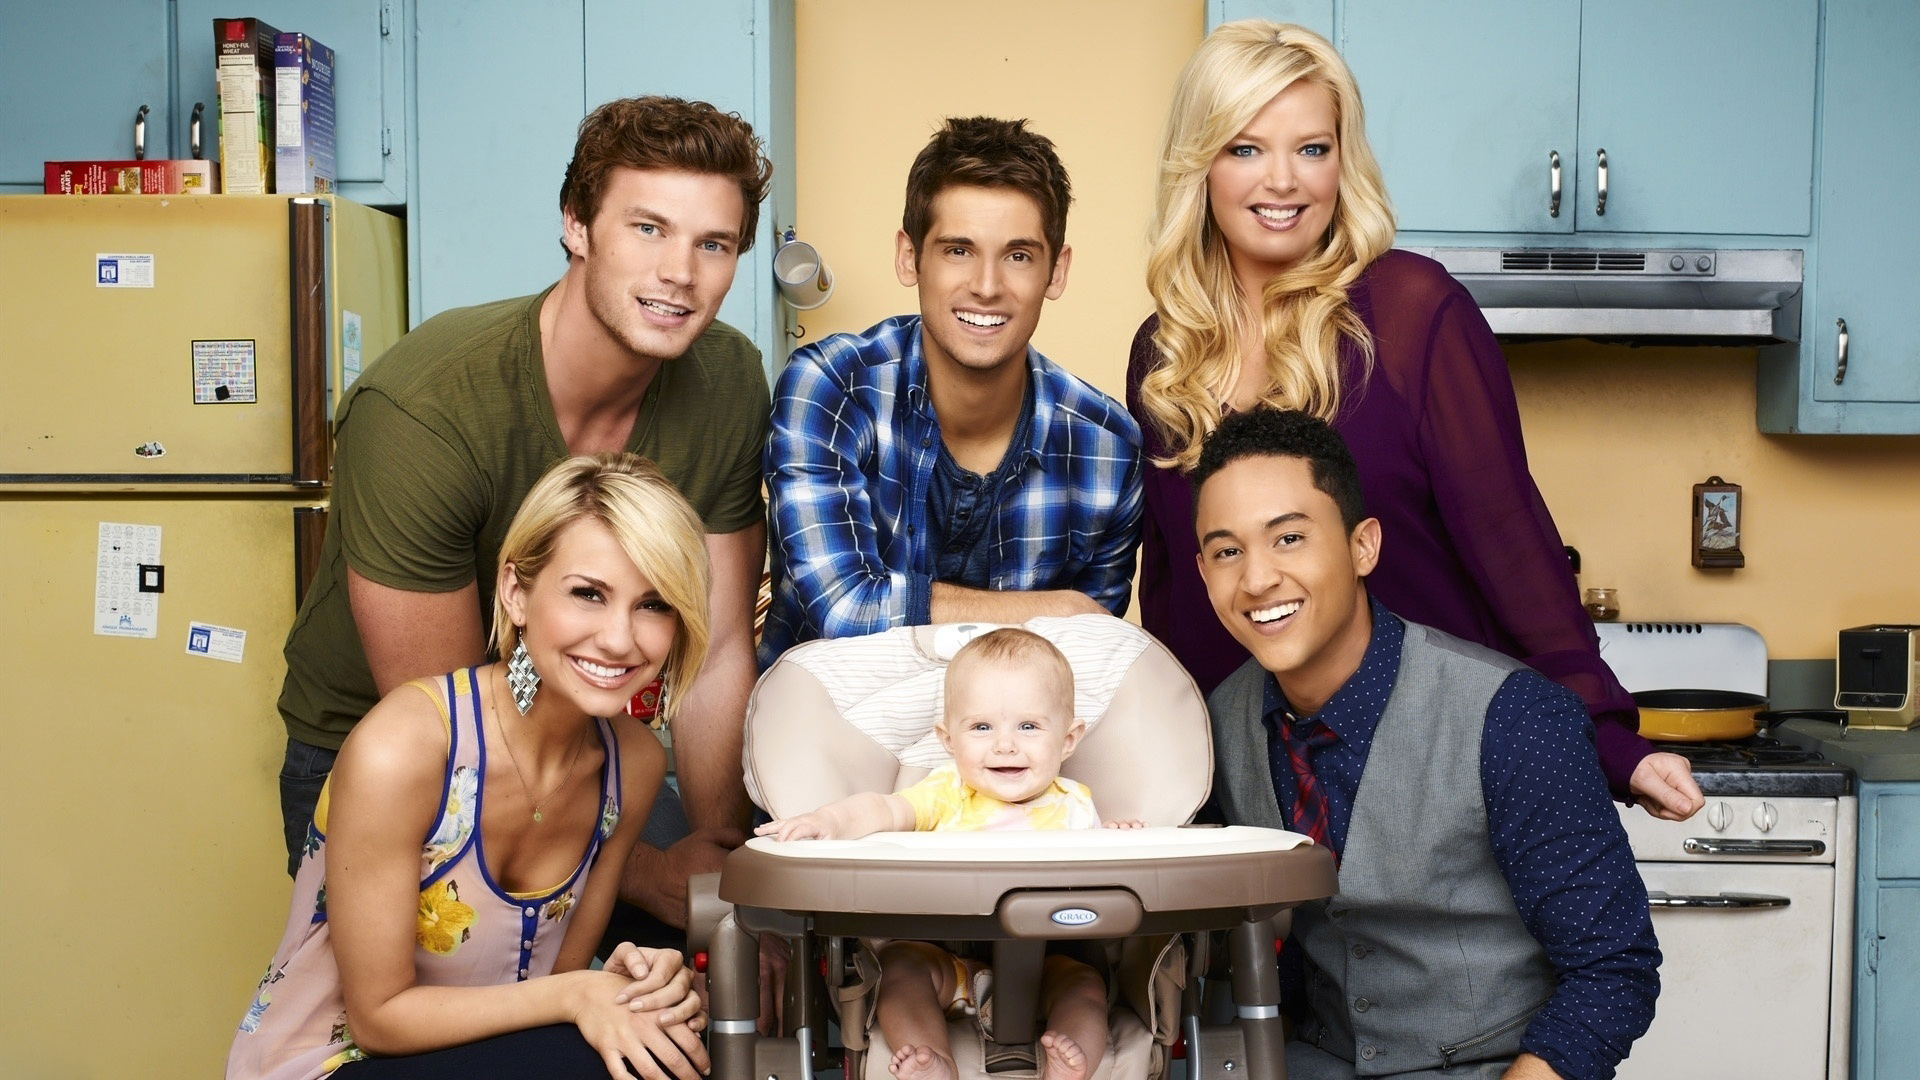 Baby Daddy - Season 4 - Watch Online Movies for Free on ...What Happens In Vegas Gomovies